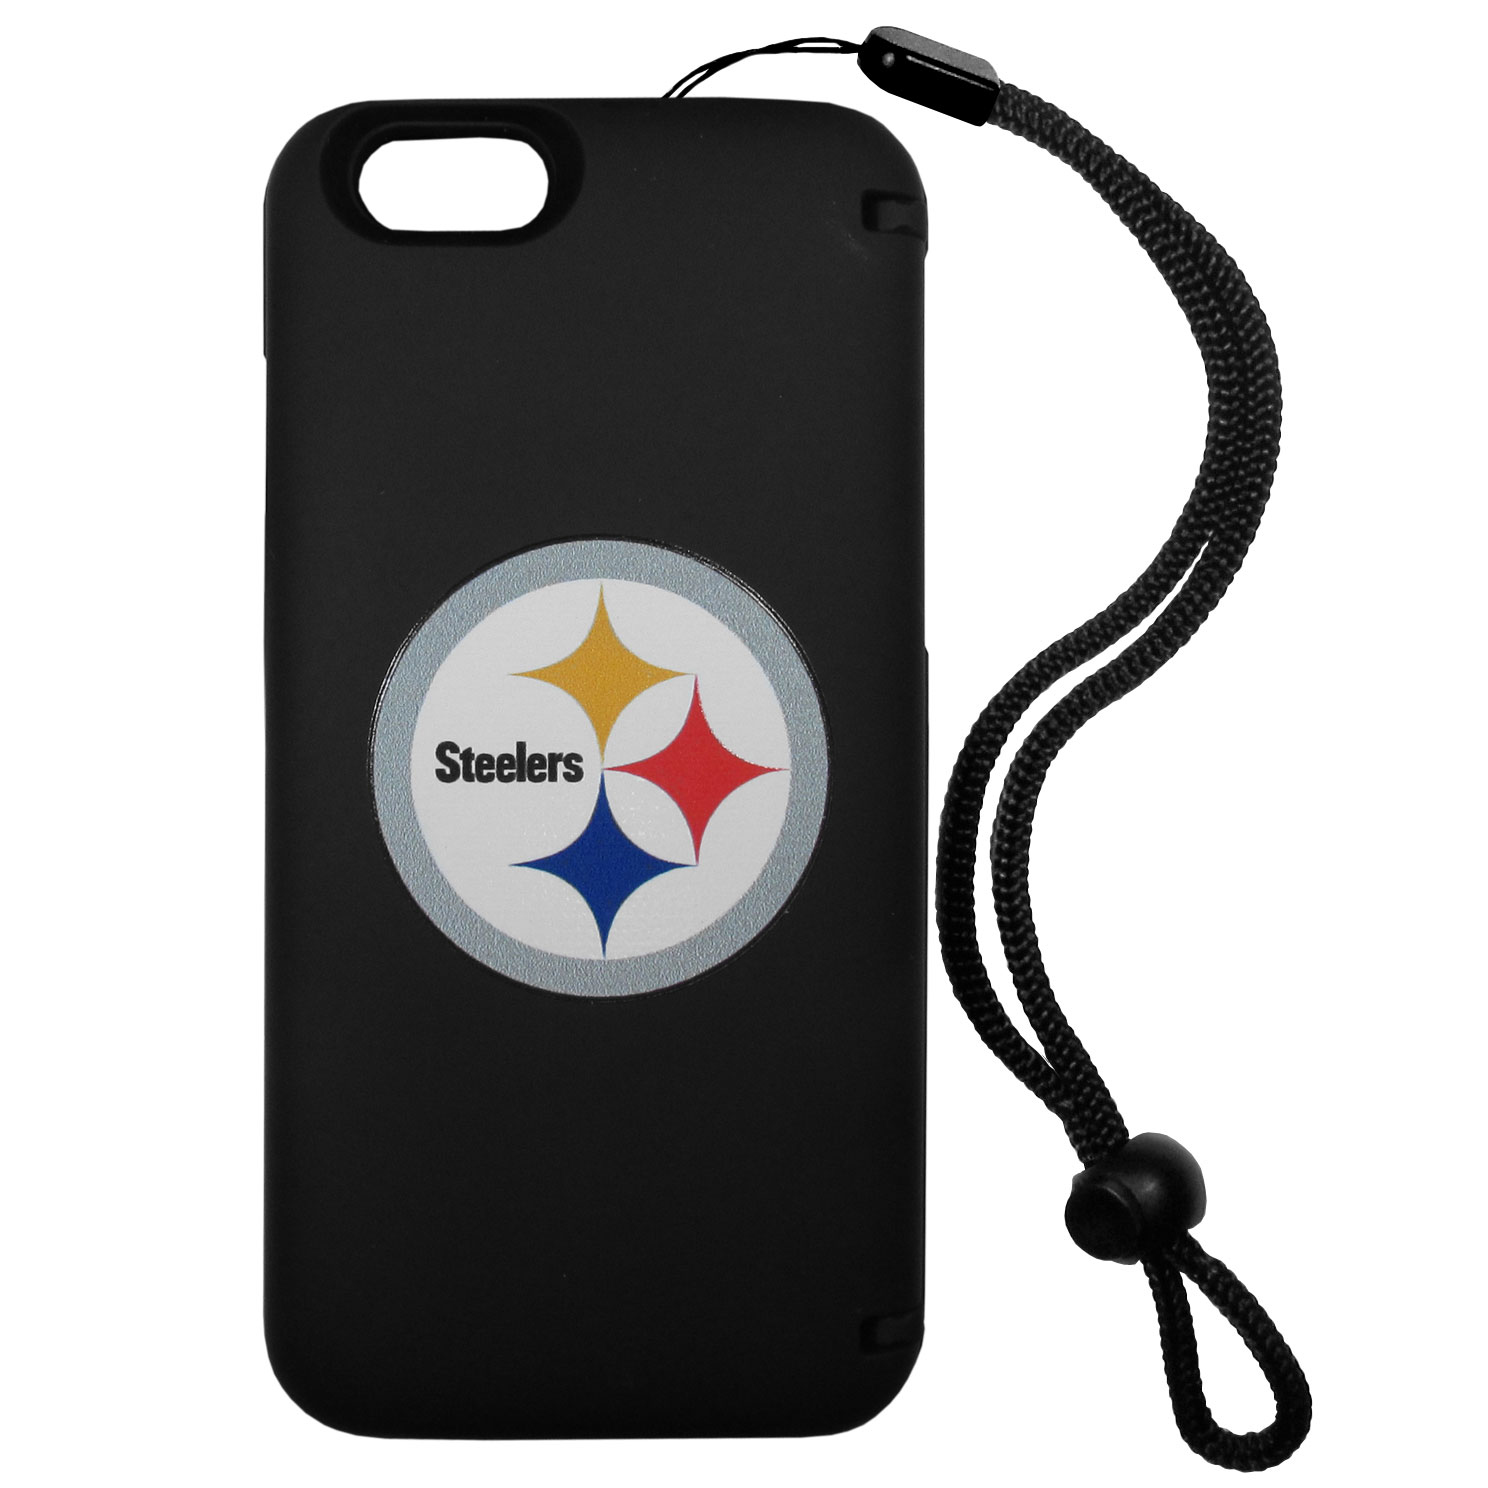 Pittsburgh Steelers iPhone 6 Everything Case - This case really does have everything but the kitchen sink! The hidden compartment lets you keep your cards, money and tickets to the big game safe and secure and has a compact mirror so you can make sure your game face is ready to go. It also comes with a kickstand to make chatting and watching videos a breeze. The wrist strap allows you to travel with ease with your everything case. If that's not enough, it also comes with the Pittsburgh Steelers logo printed in expert detail on the front.